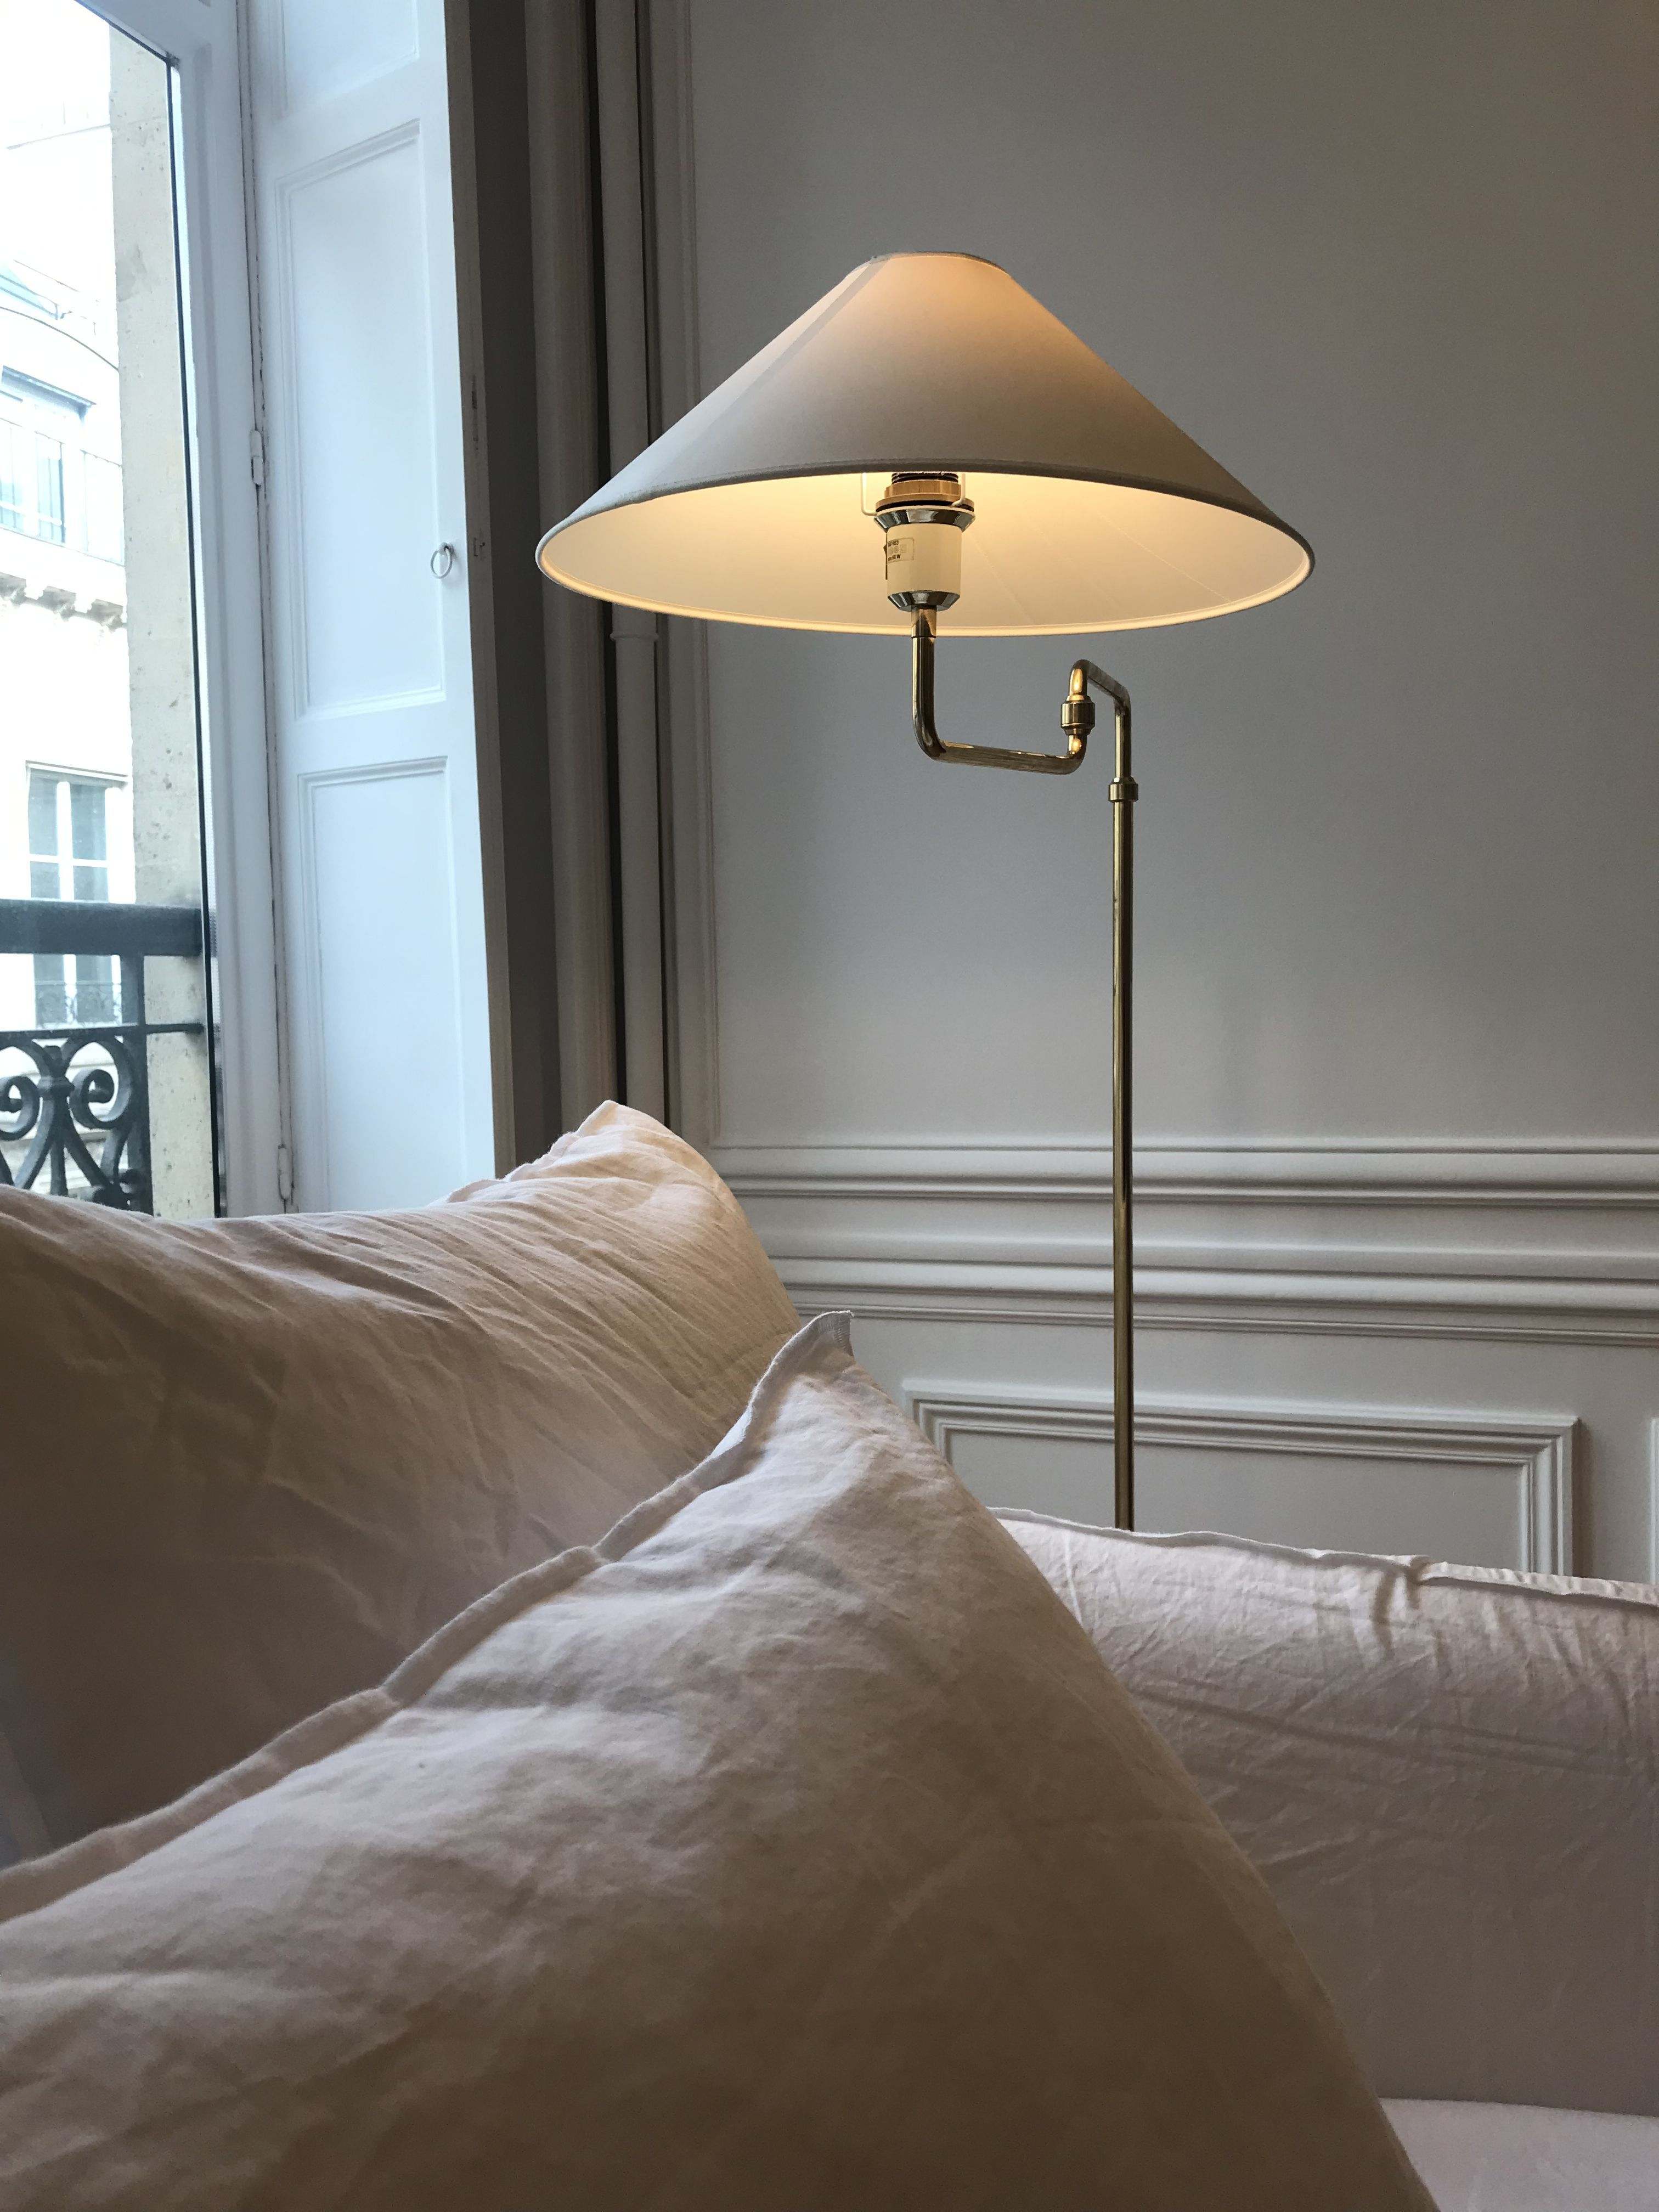 Pin by Lové on ديكور ✨ in 2020 | Bedroom lamps design, Home